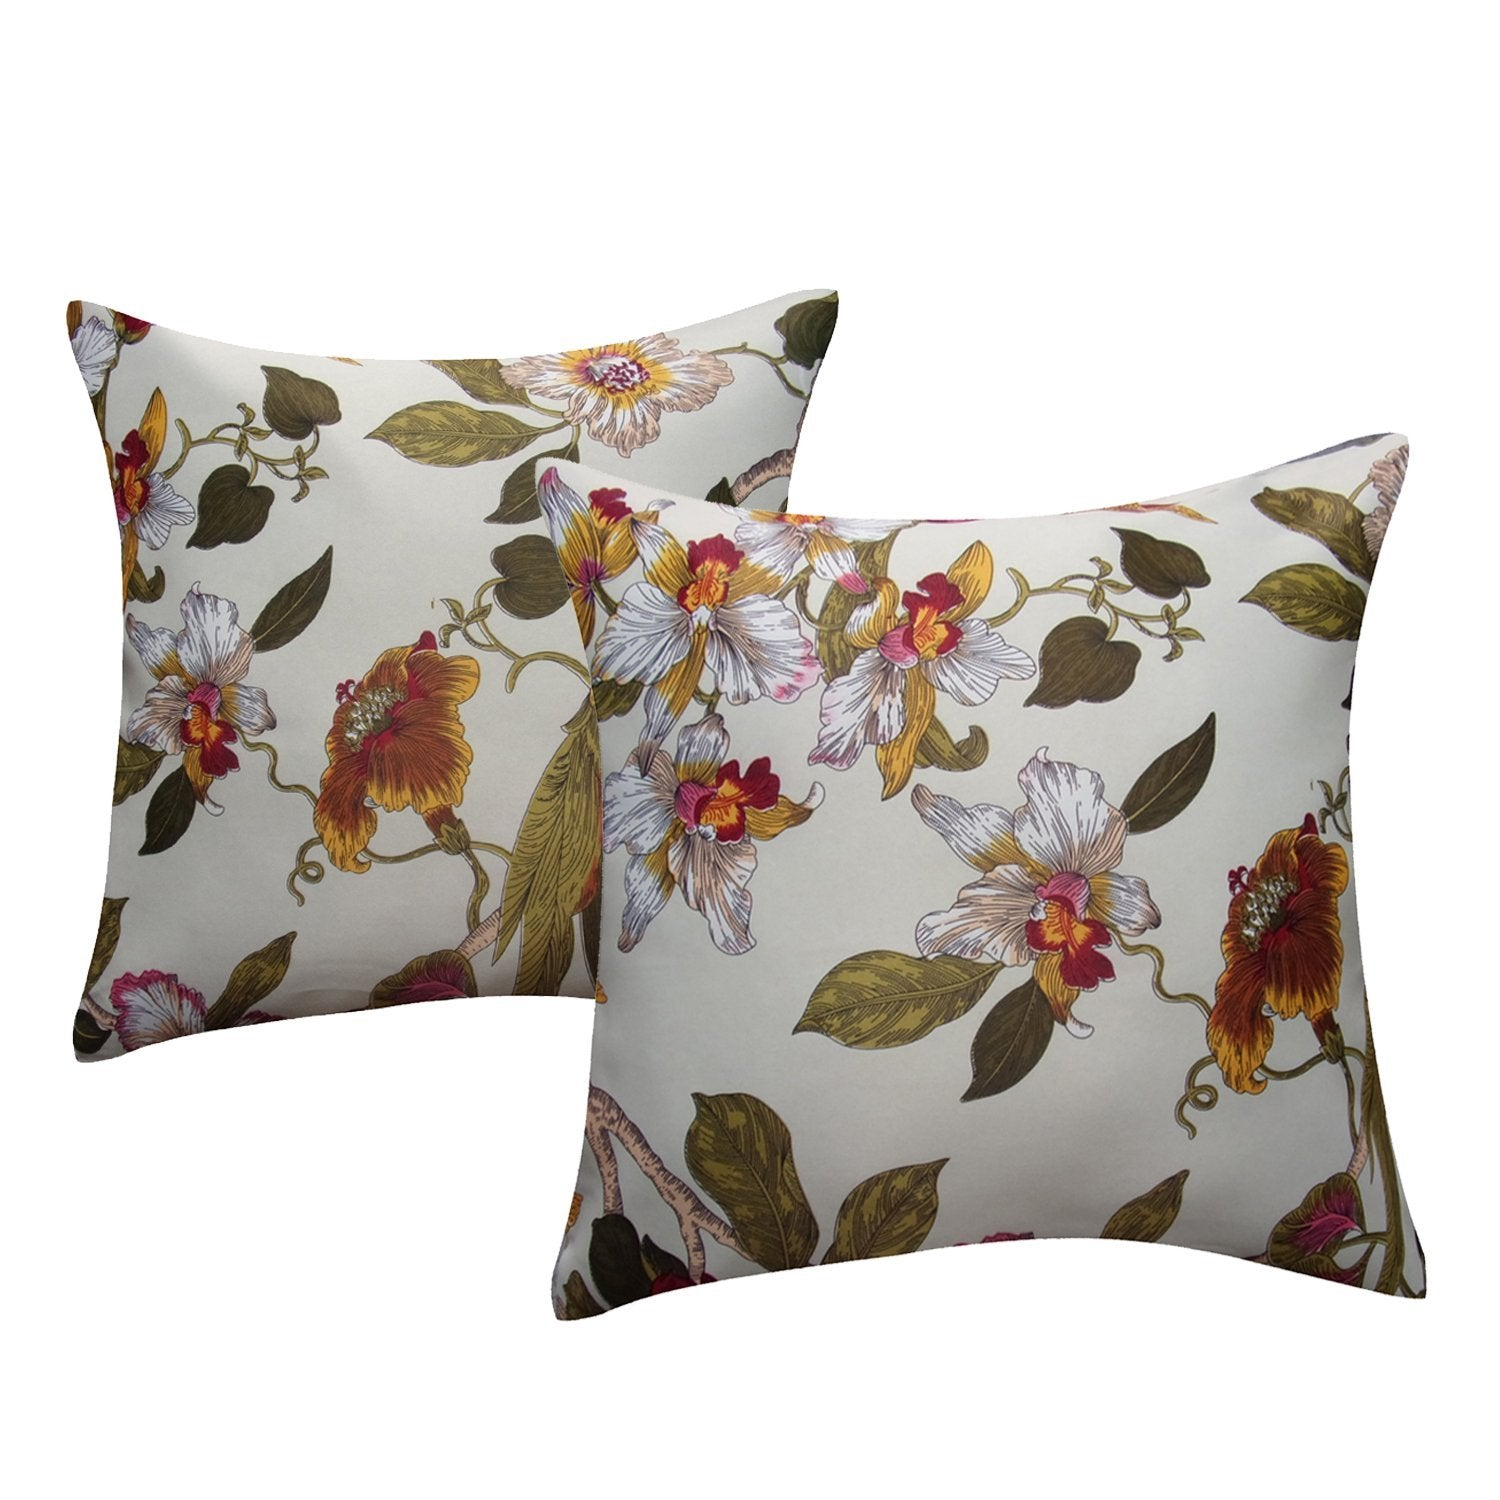 Aandy Top Bird Red Flower Pillow Cover Cases 1 Set Of 2 2(18X18)